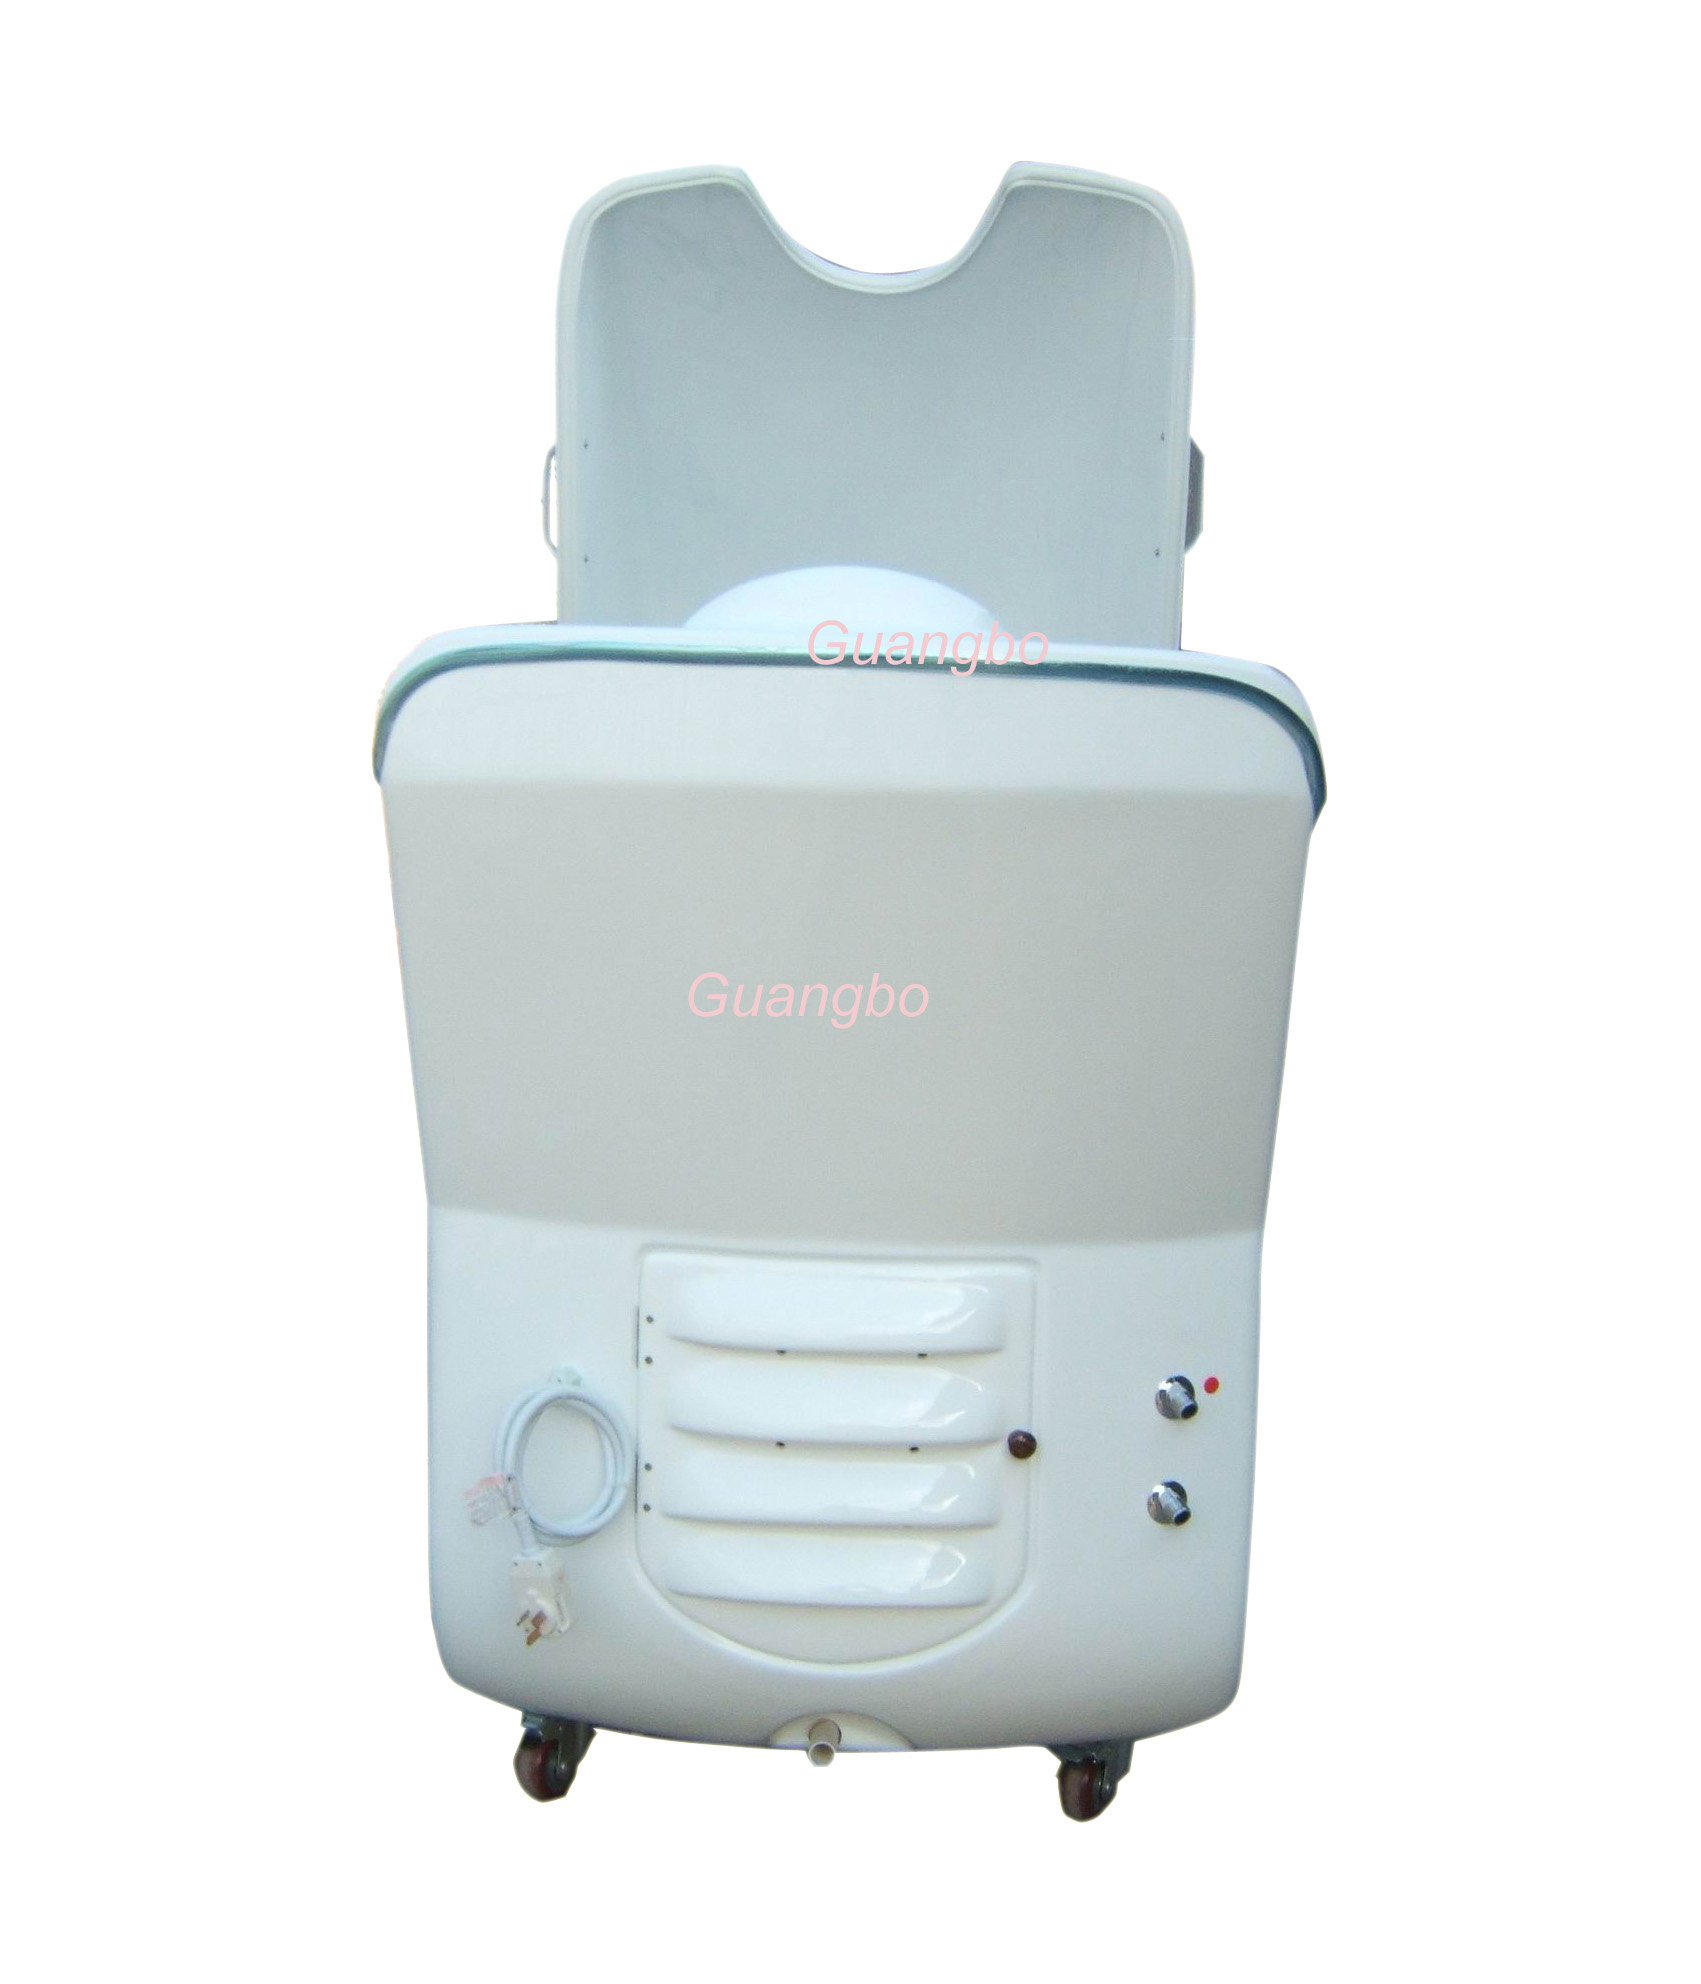 Ozone Therapy Spa Capsule GM1022/Beauty Supplies/Personal Care